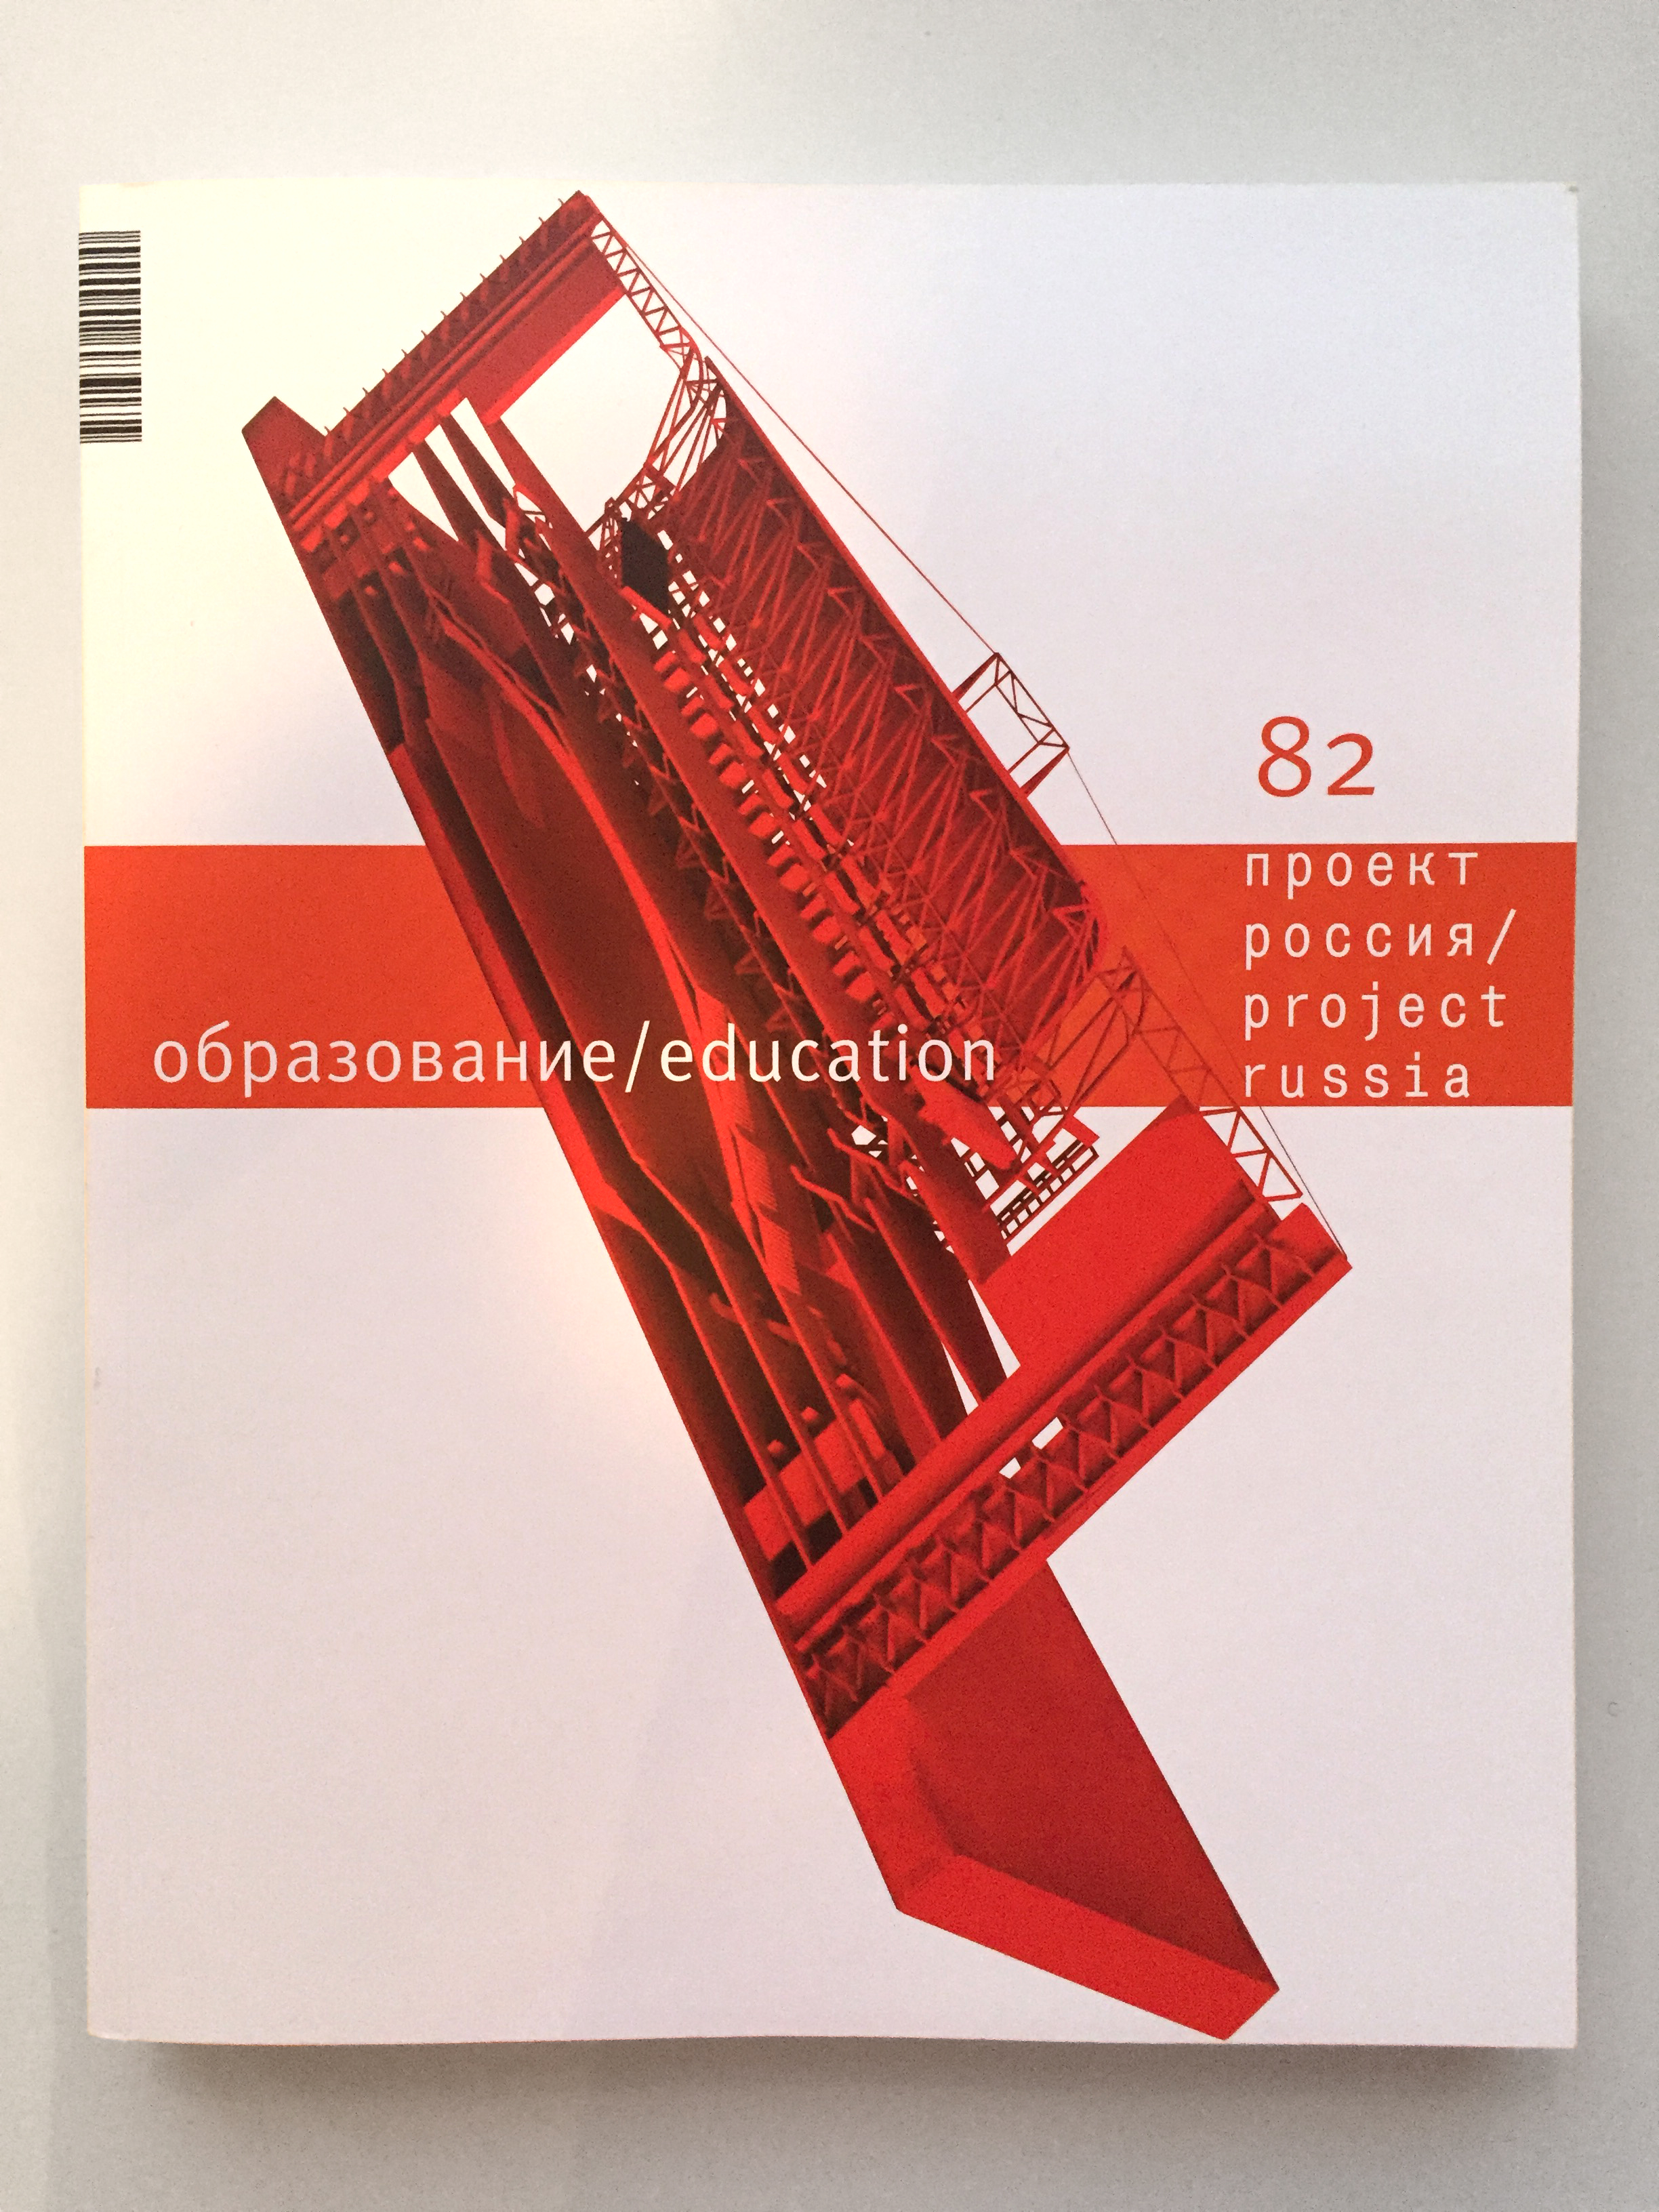 rbsystems_rustem baishev_project Russia_education 2.jpg